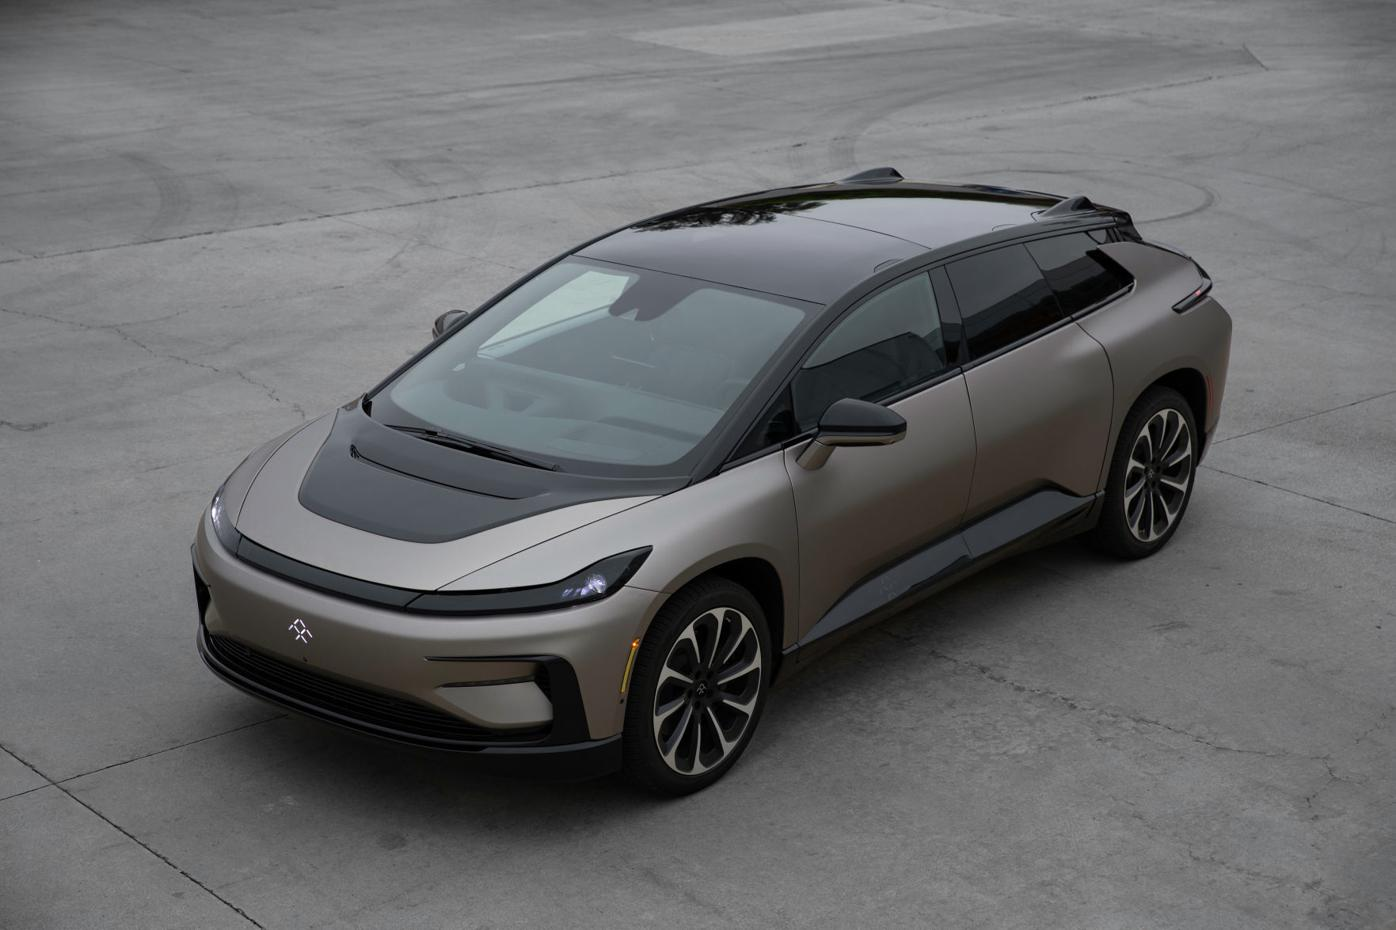 Faraday Future reveals its new concept 2